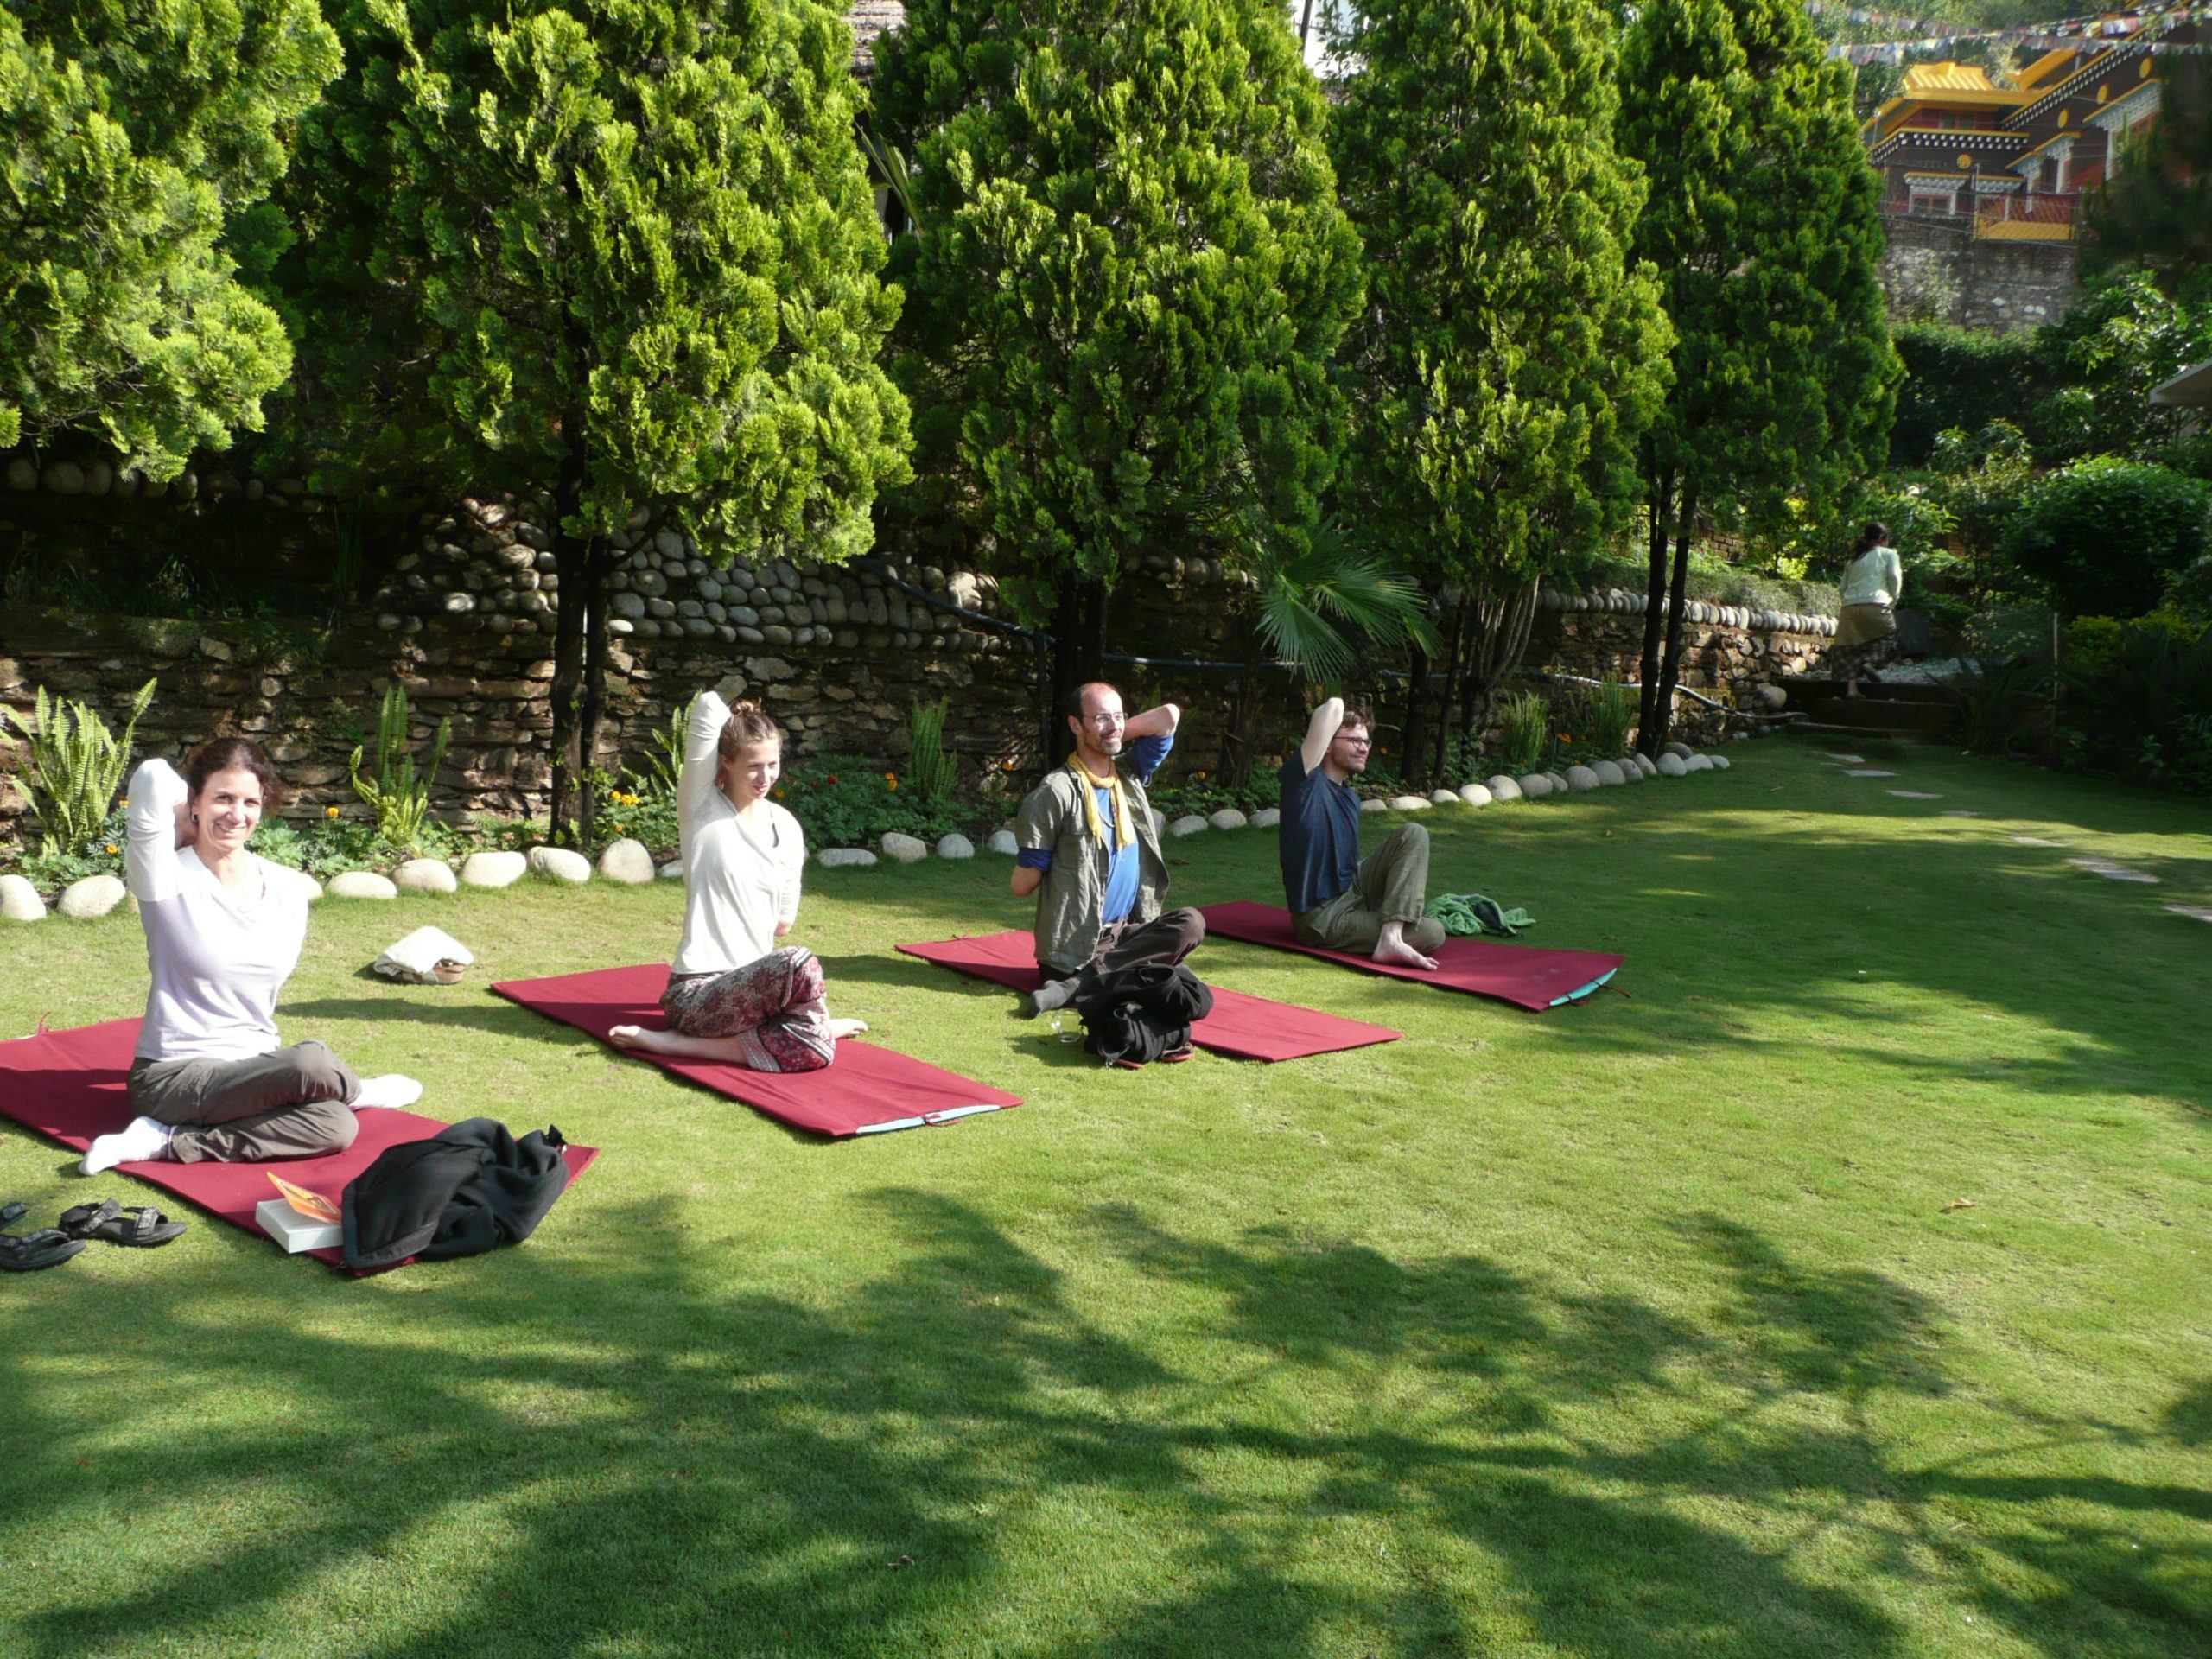 four people doing yoga on mats in a lush green garden, before the nepal earthquake